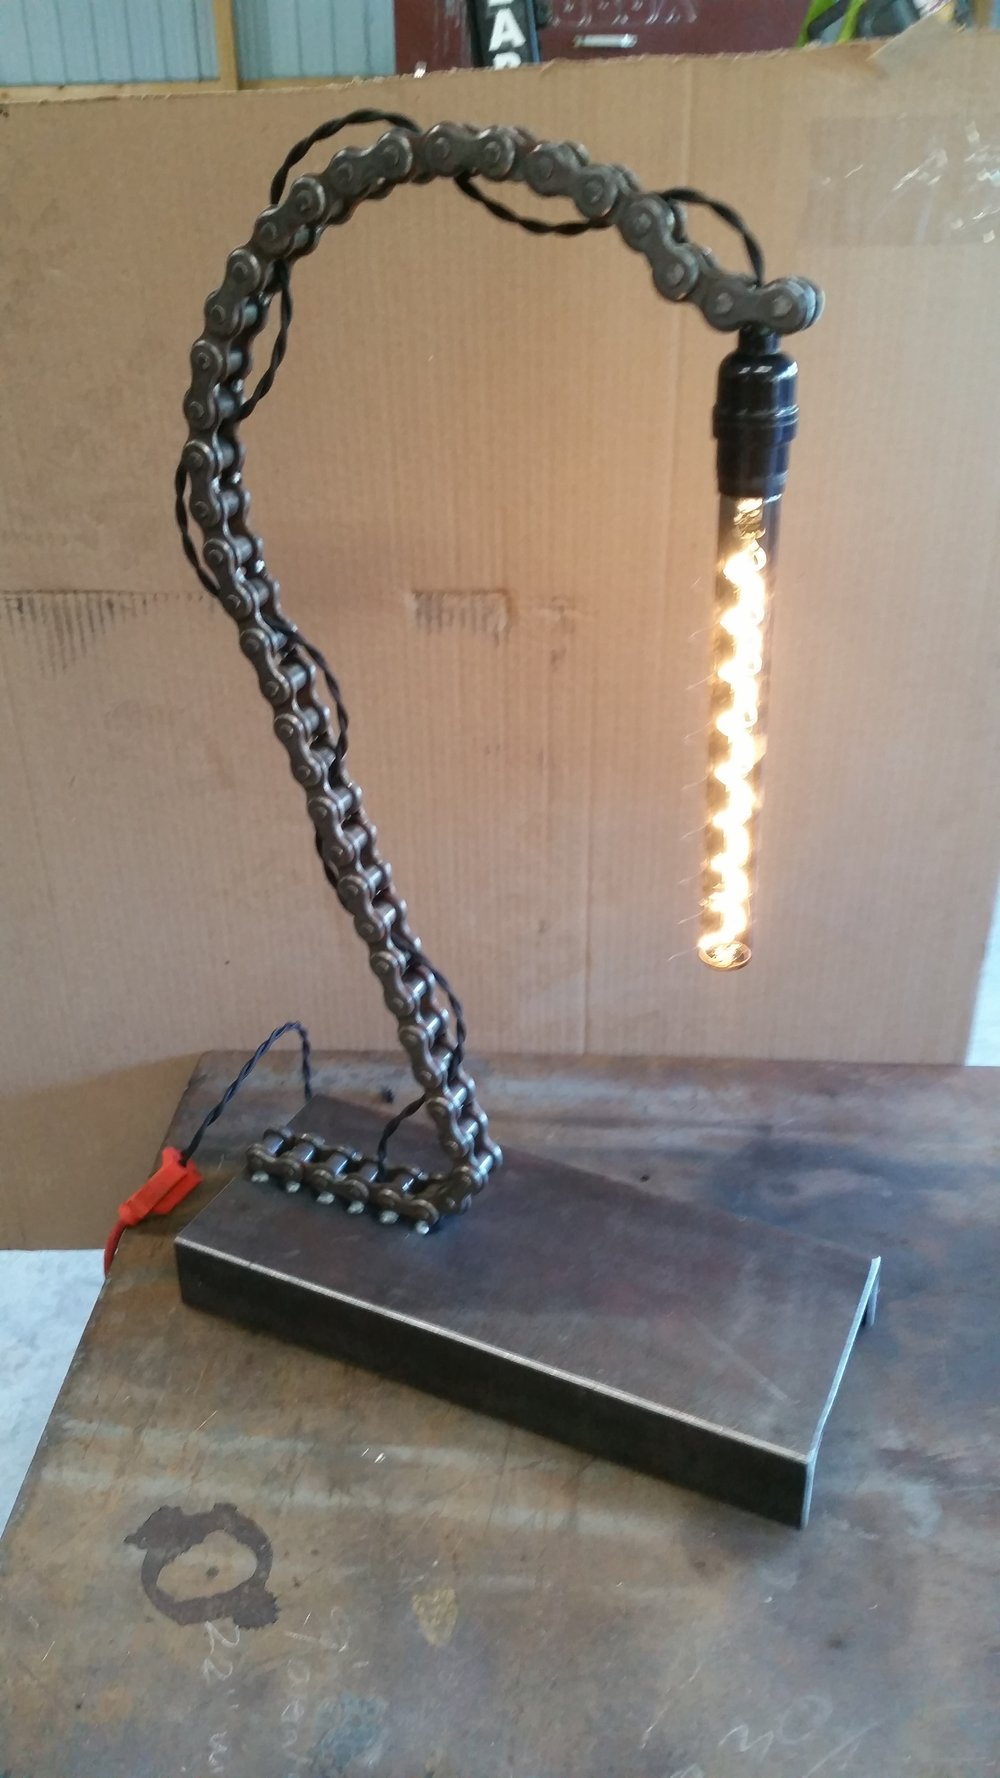 Desk lamp from an old forklift chain and channel.